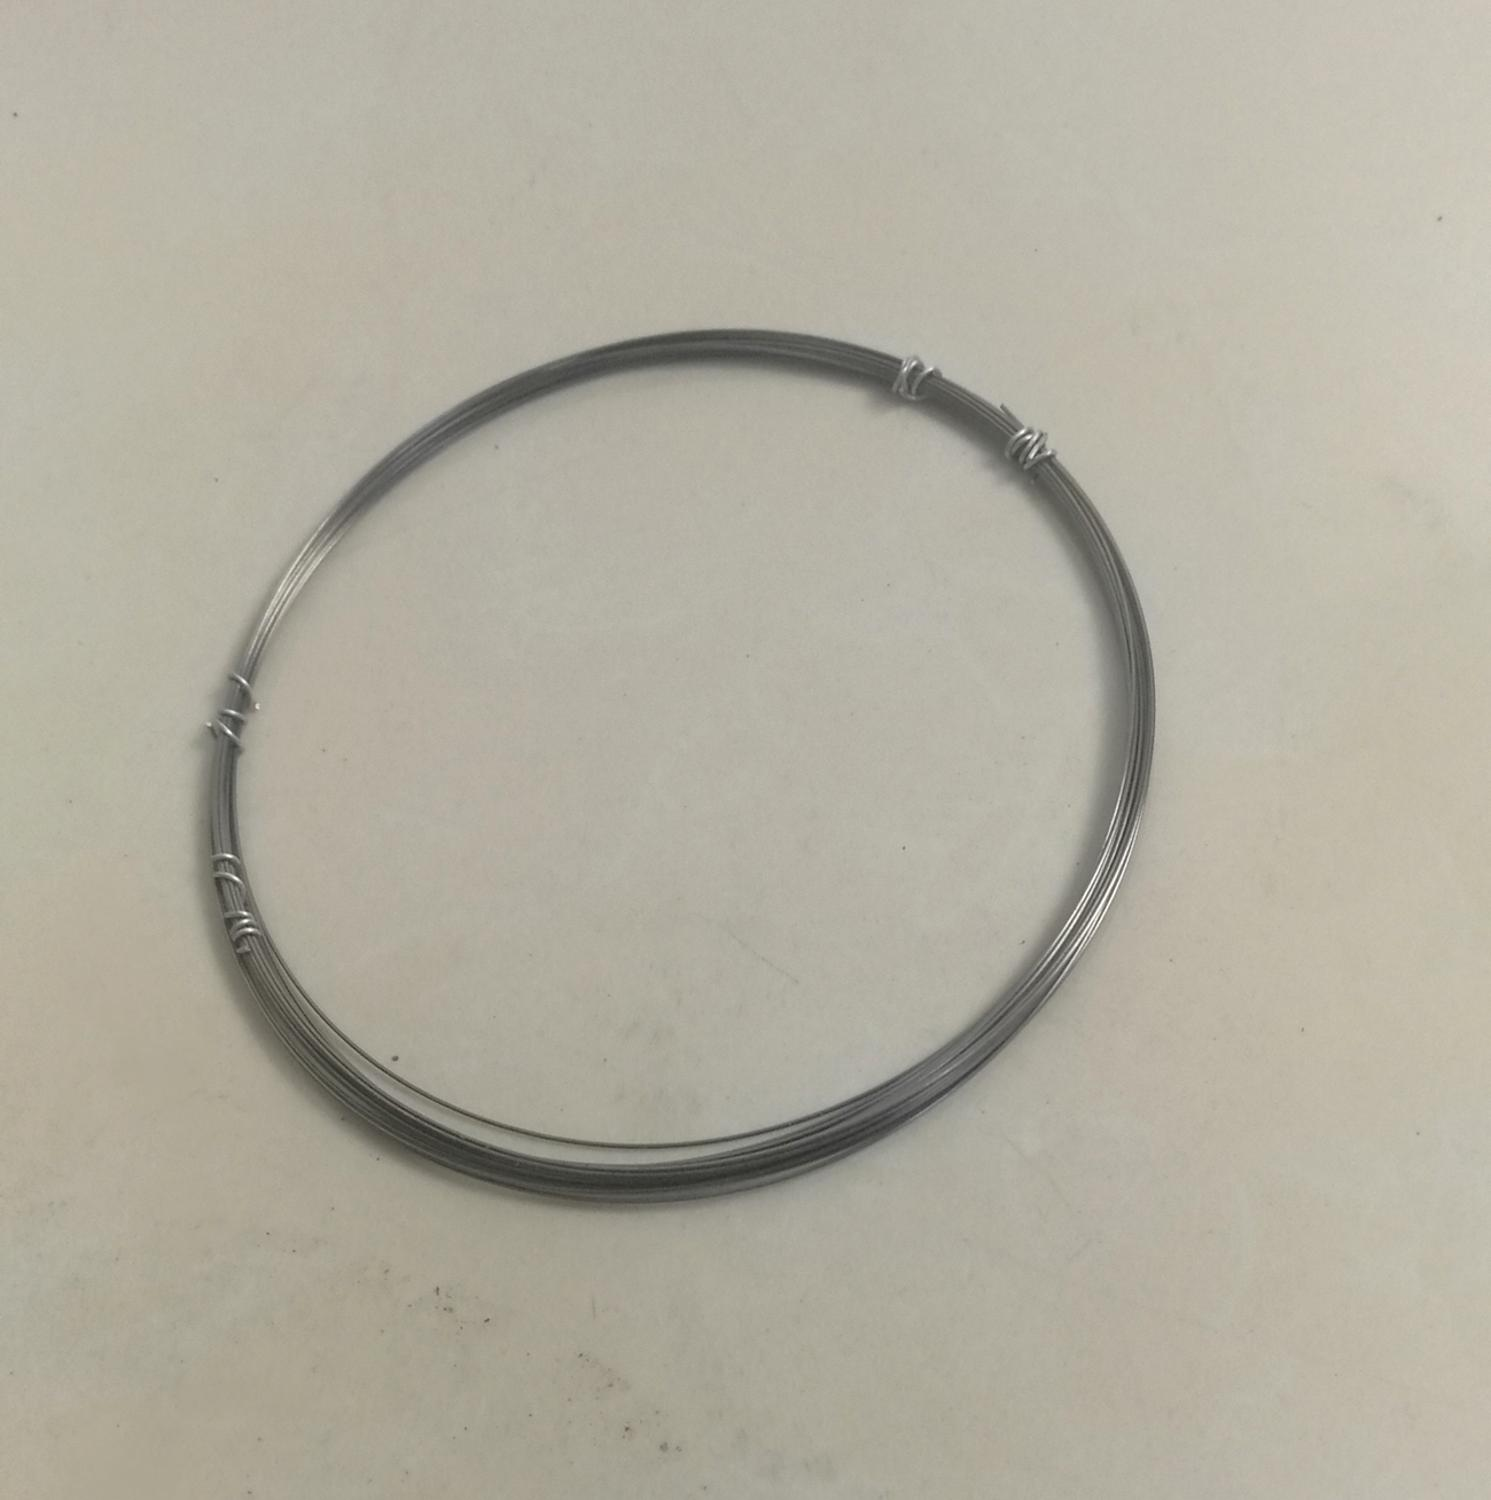 0.5mm Diameter High Purity Industry Experiment DIY Bright Tungsten Wire Vacuum Heating W Material, about 5 meters-in Welding Wires from Tools